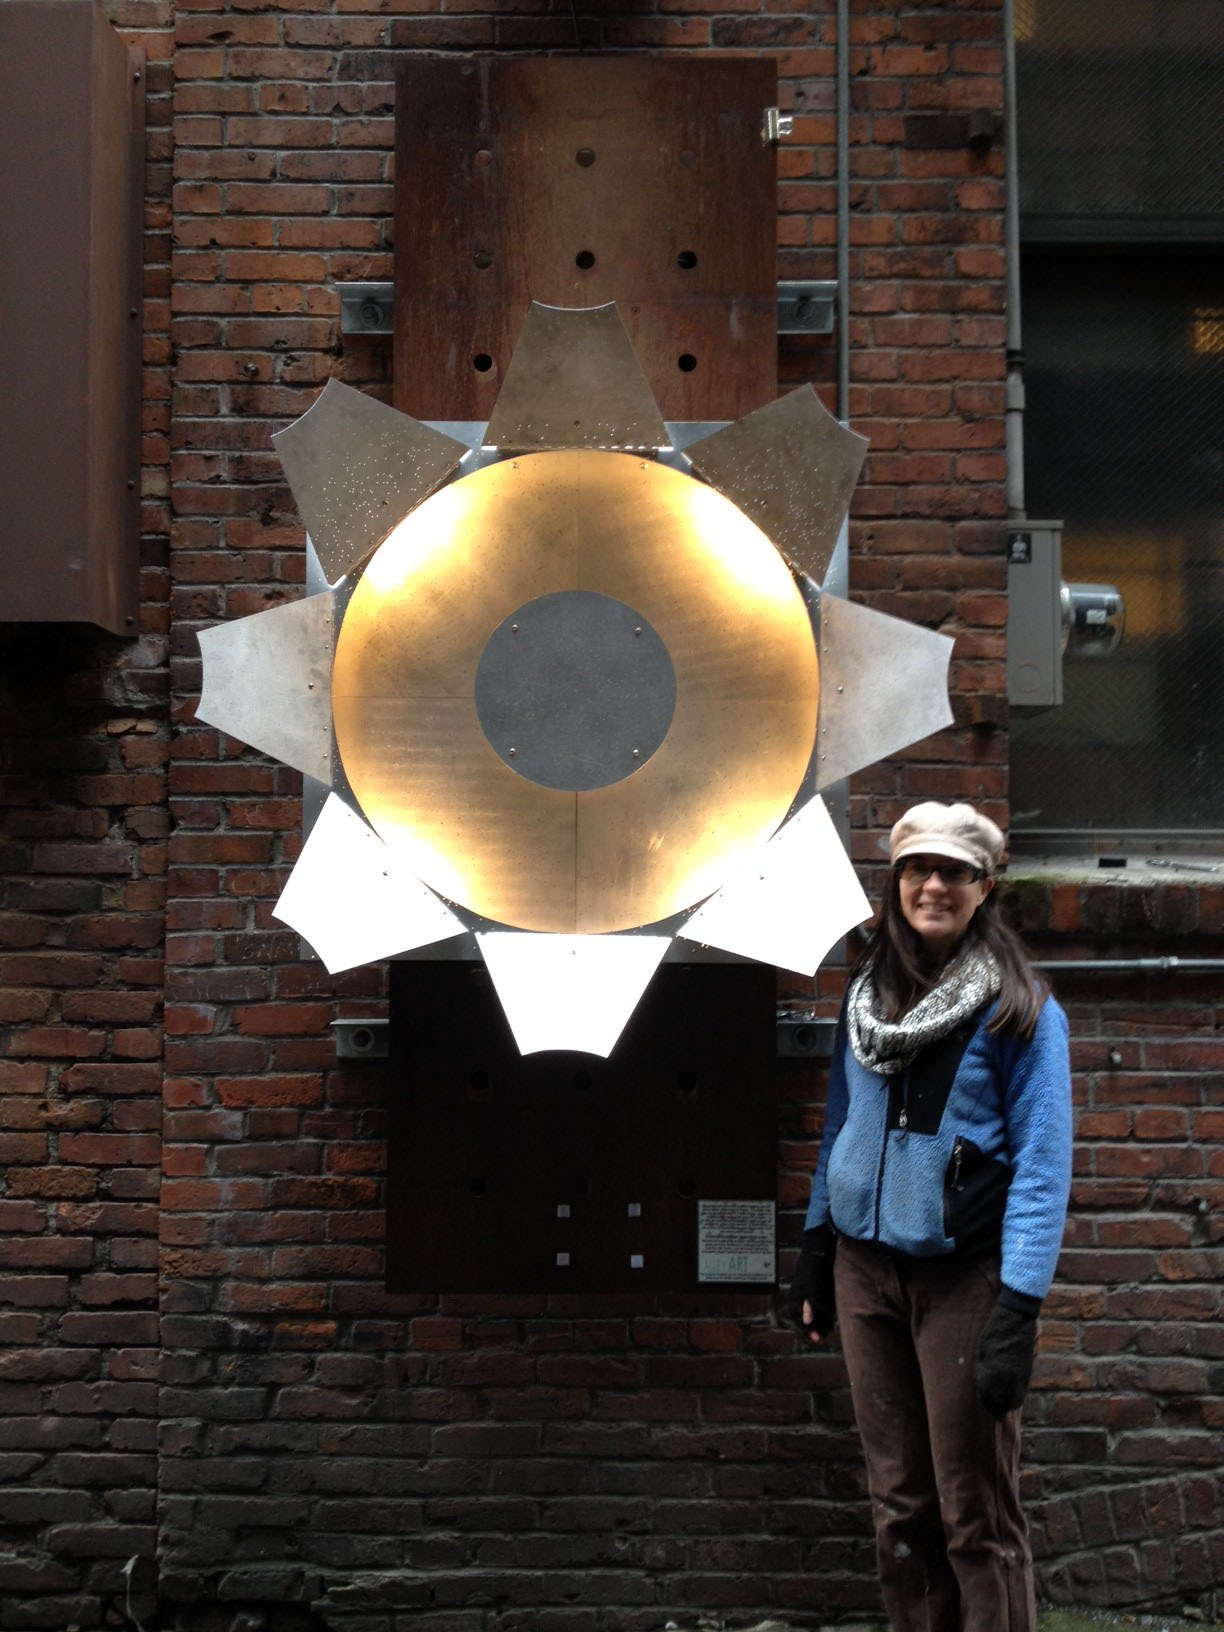 Public art by Sarah Ruether made from SDSS-II plug plates